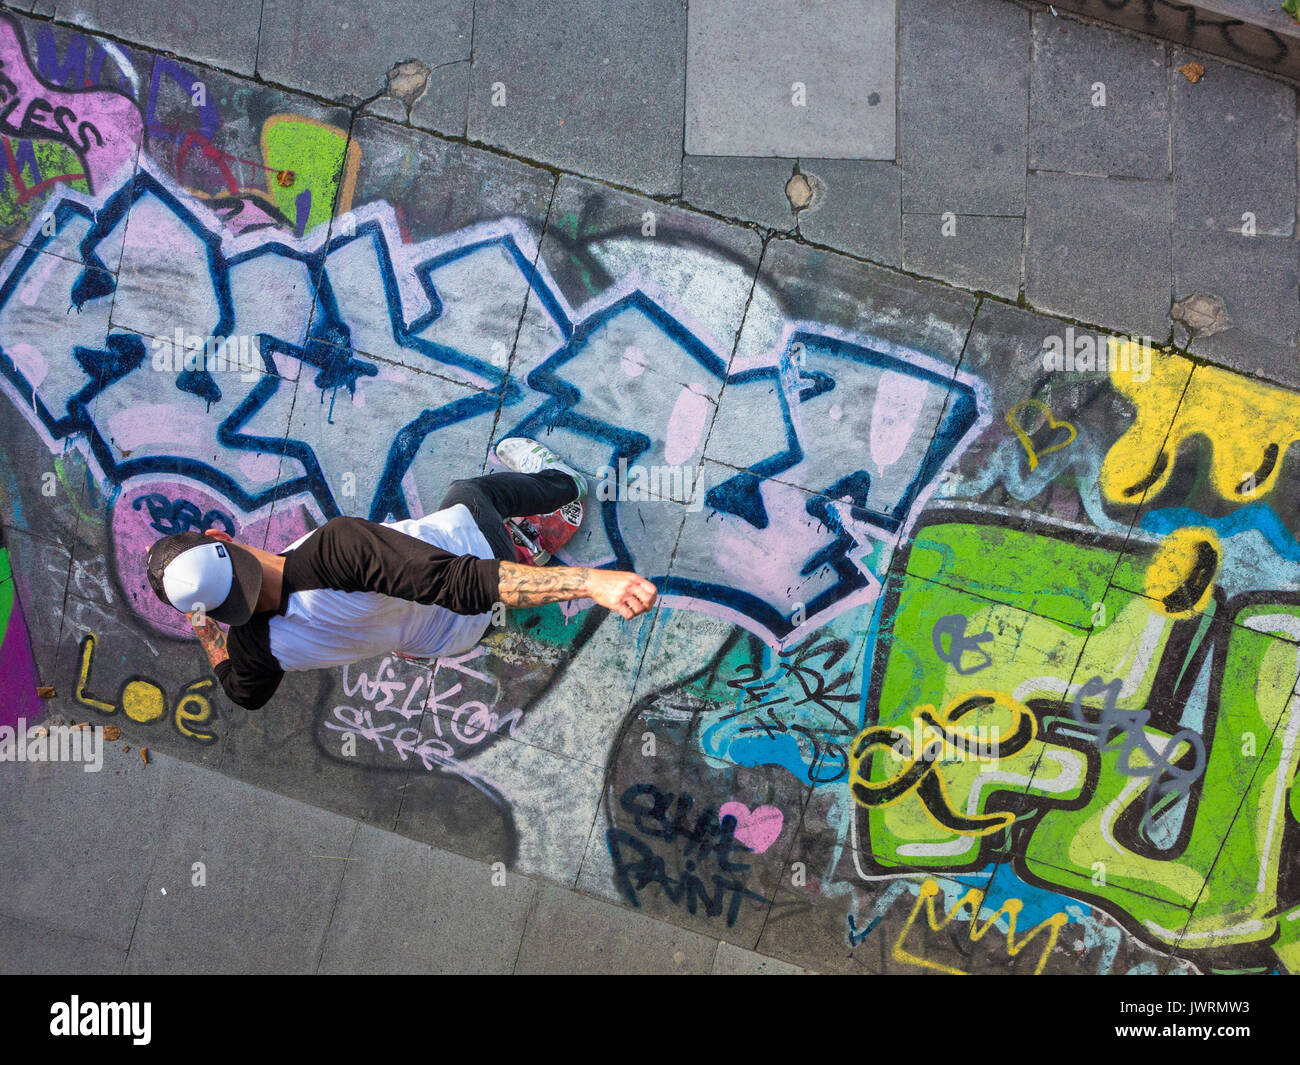 A skateboarder performs a trick, shot from above as an unusual angle - Stock Image